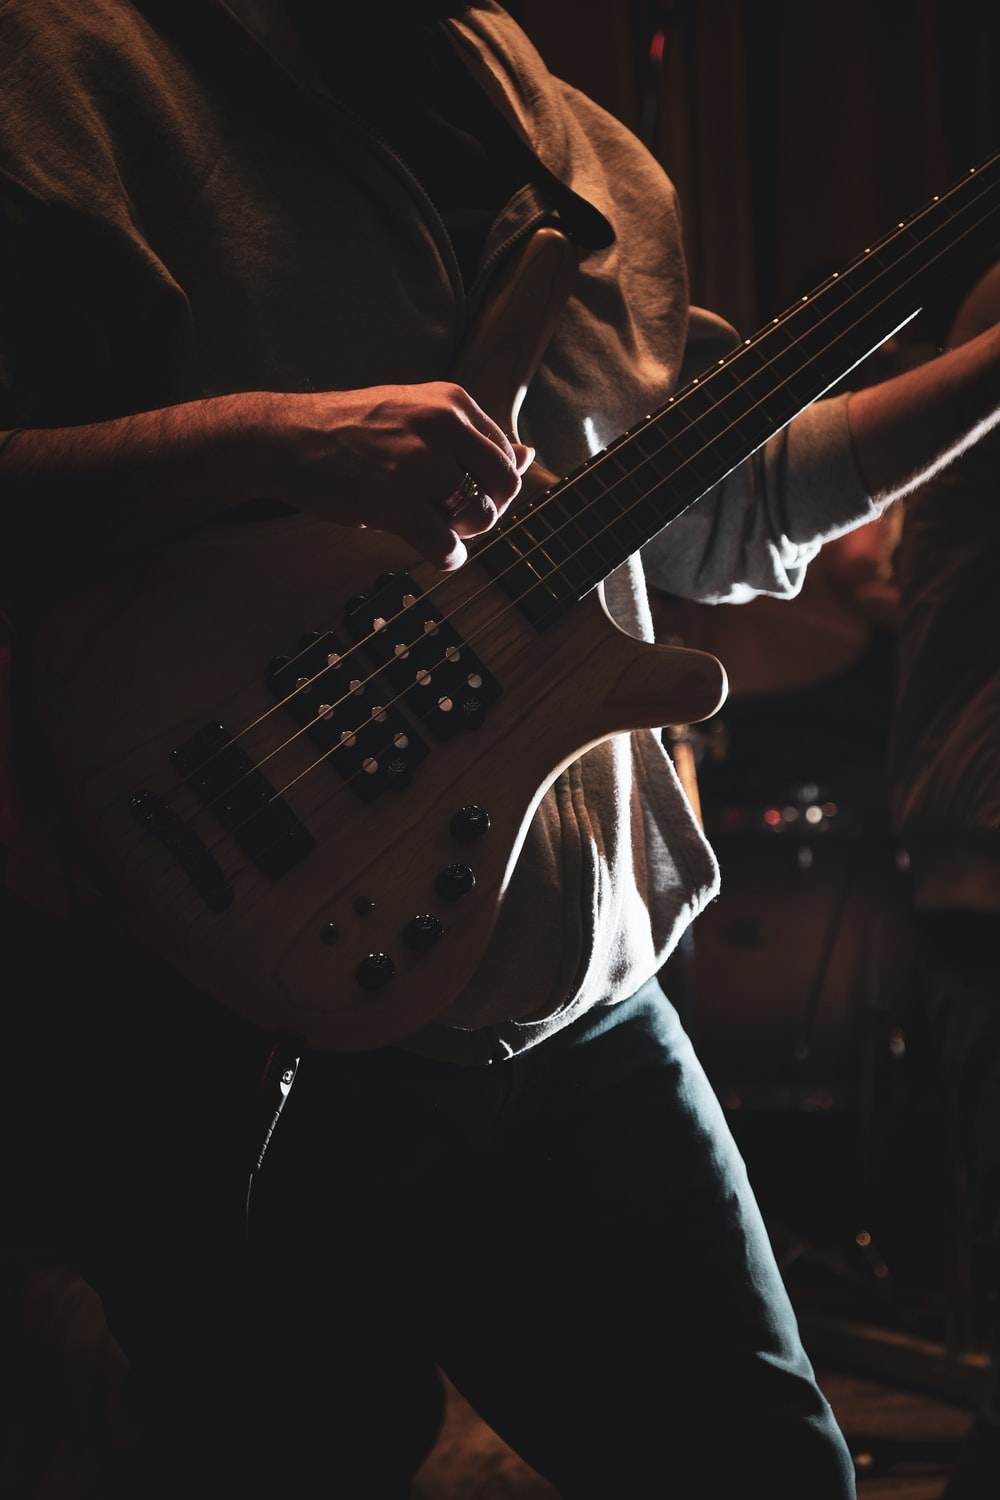 man in white shirt playing electric guitar